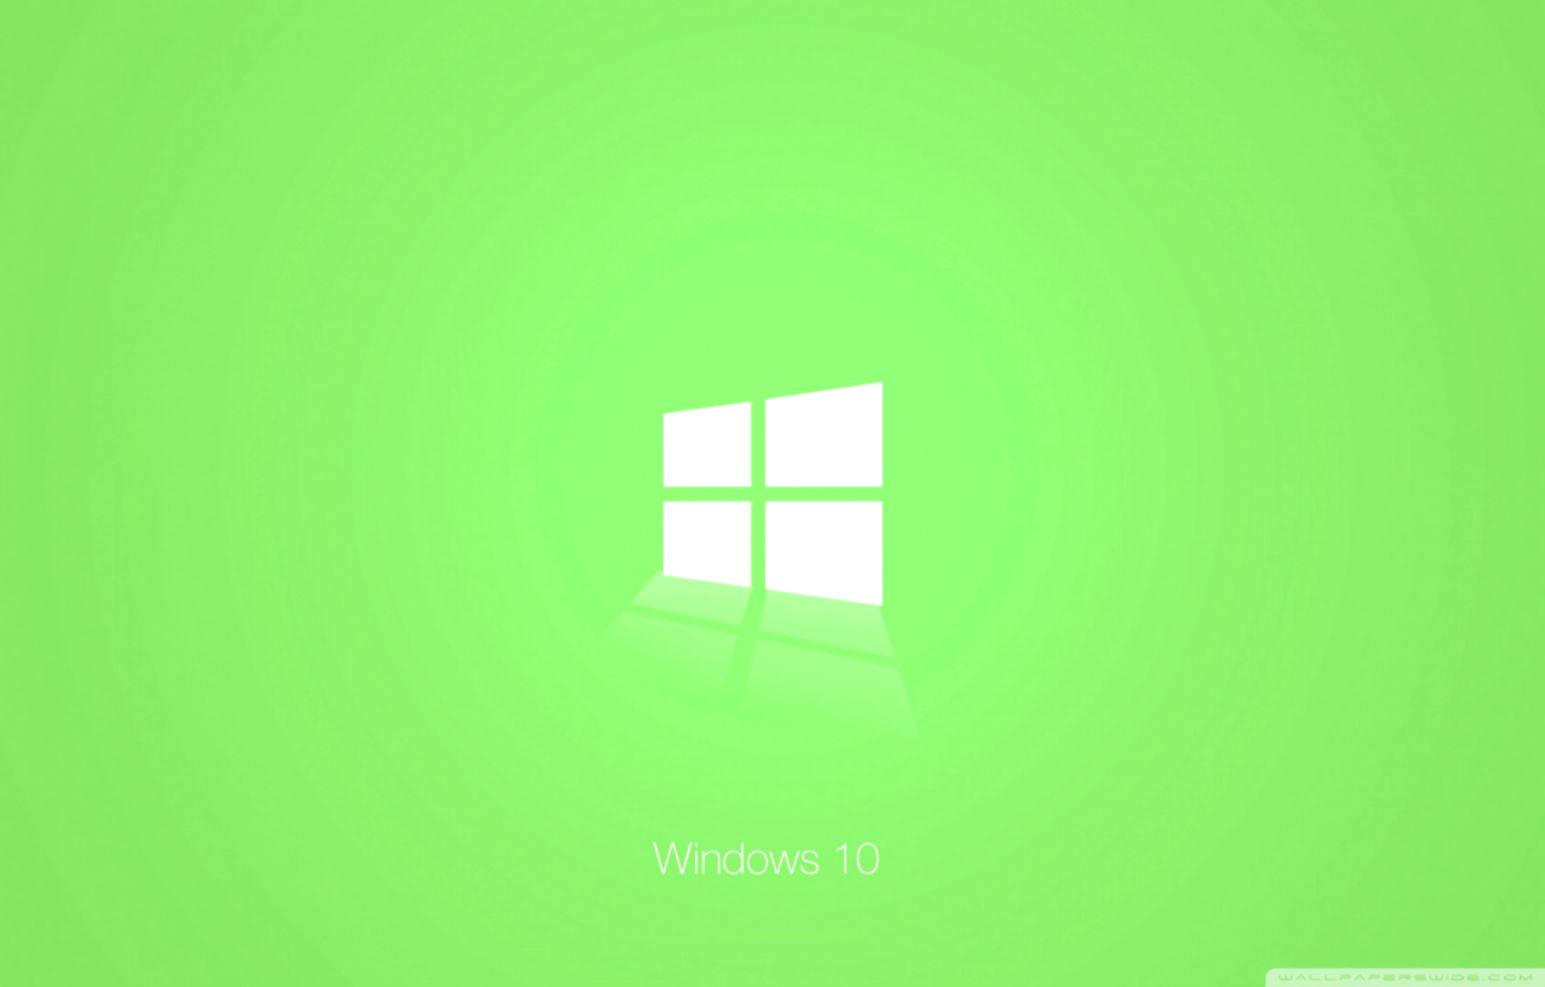 Windows Wallpaper Green Apple | Love Wallpapers